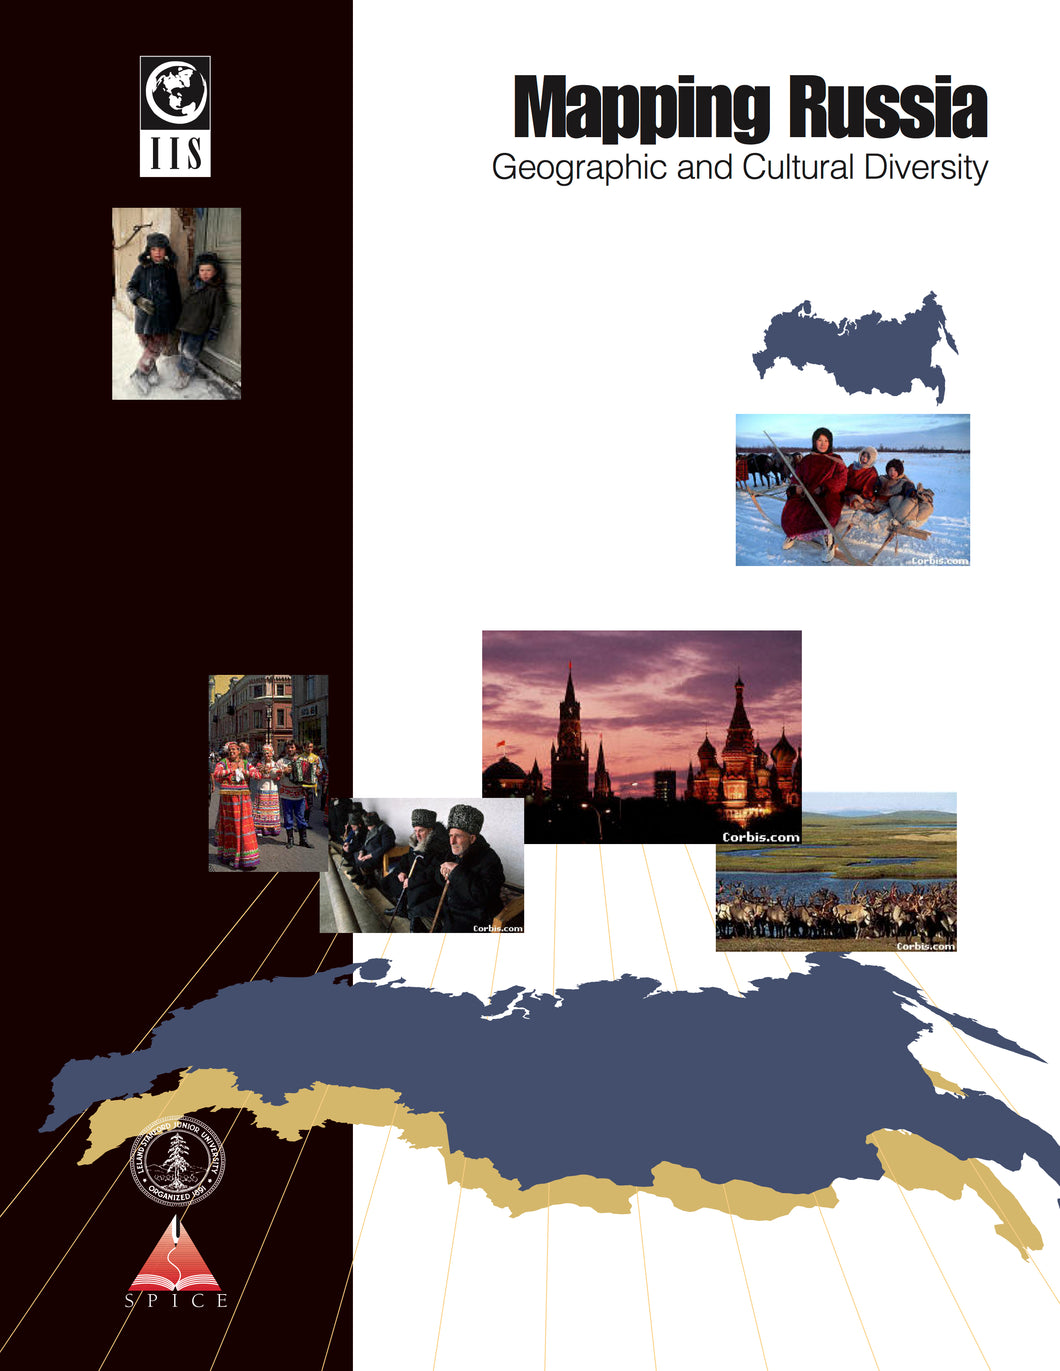 Mapping Russia: Geographic and Cultural Diversity